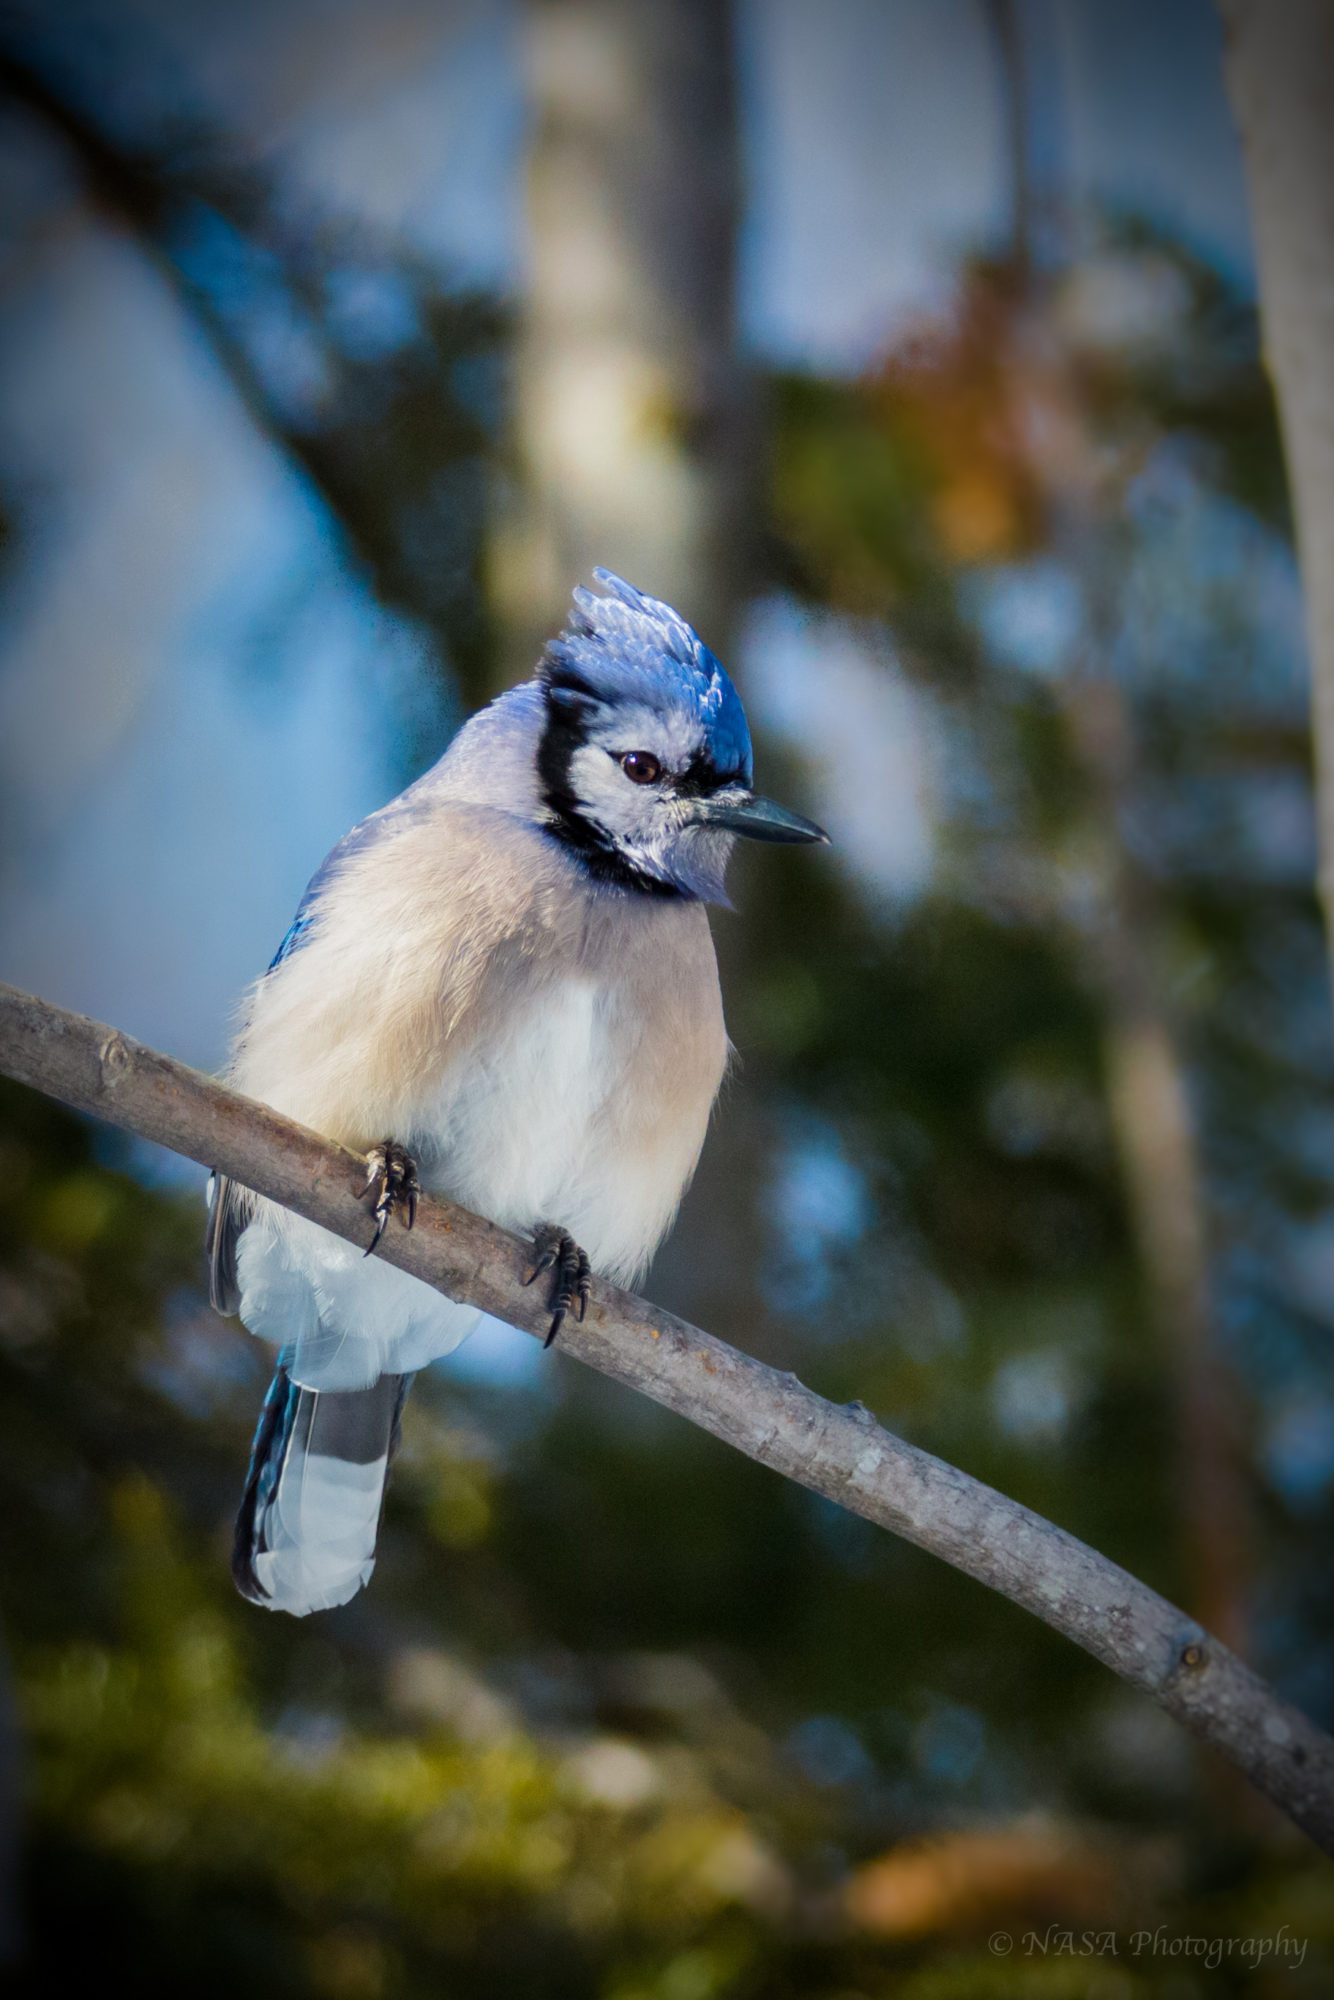 Reply To: Posing Bluejay